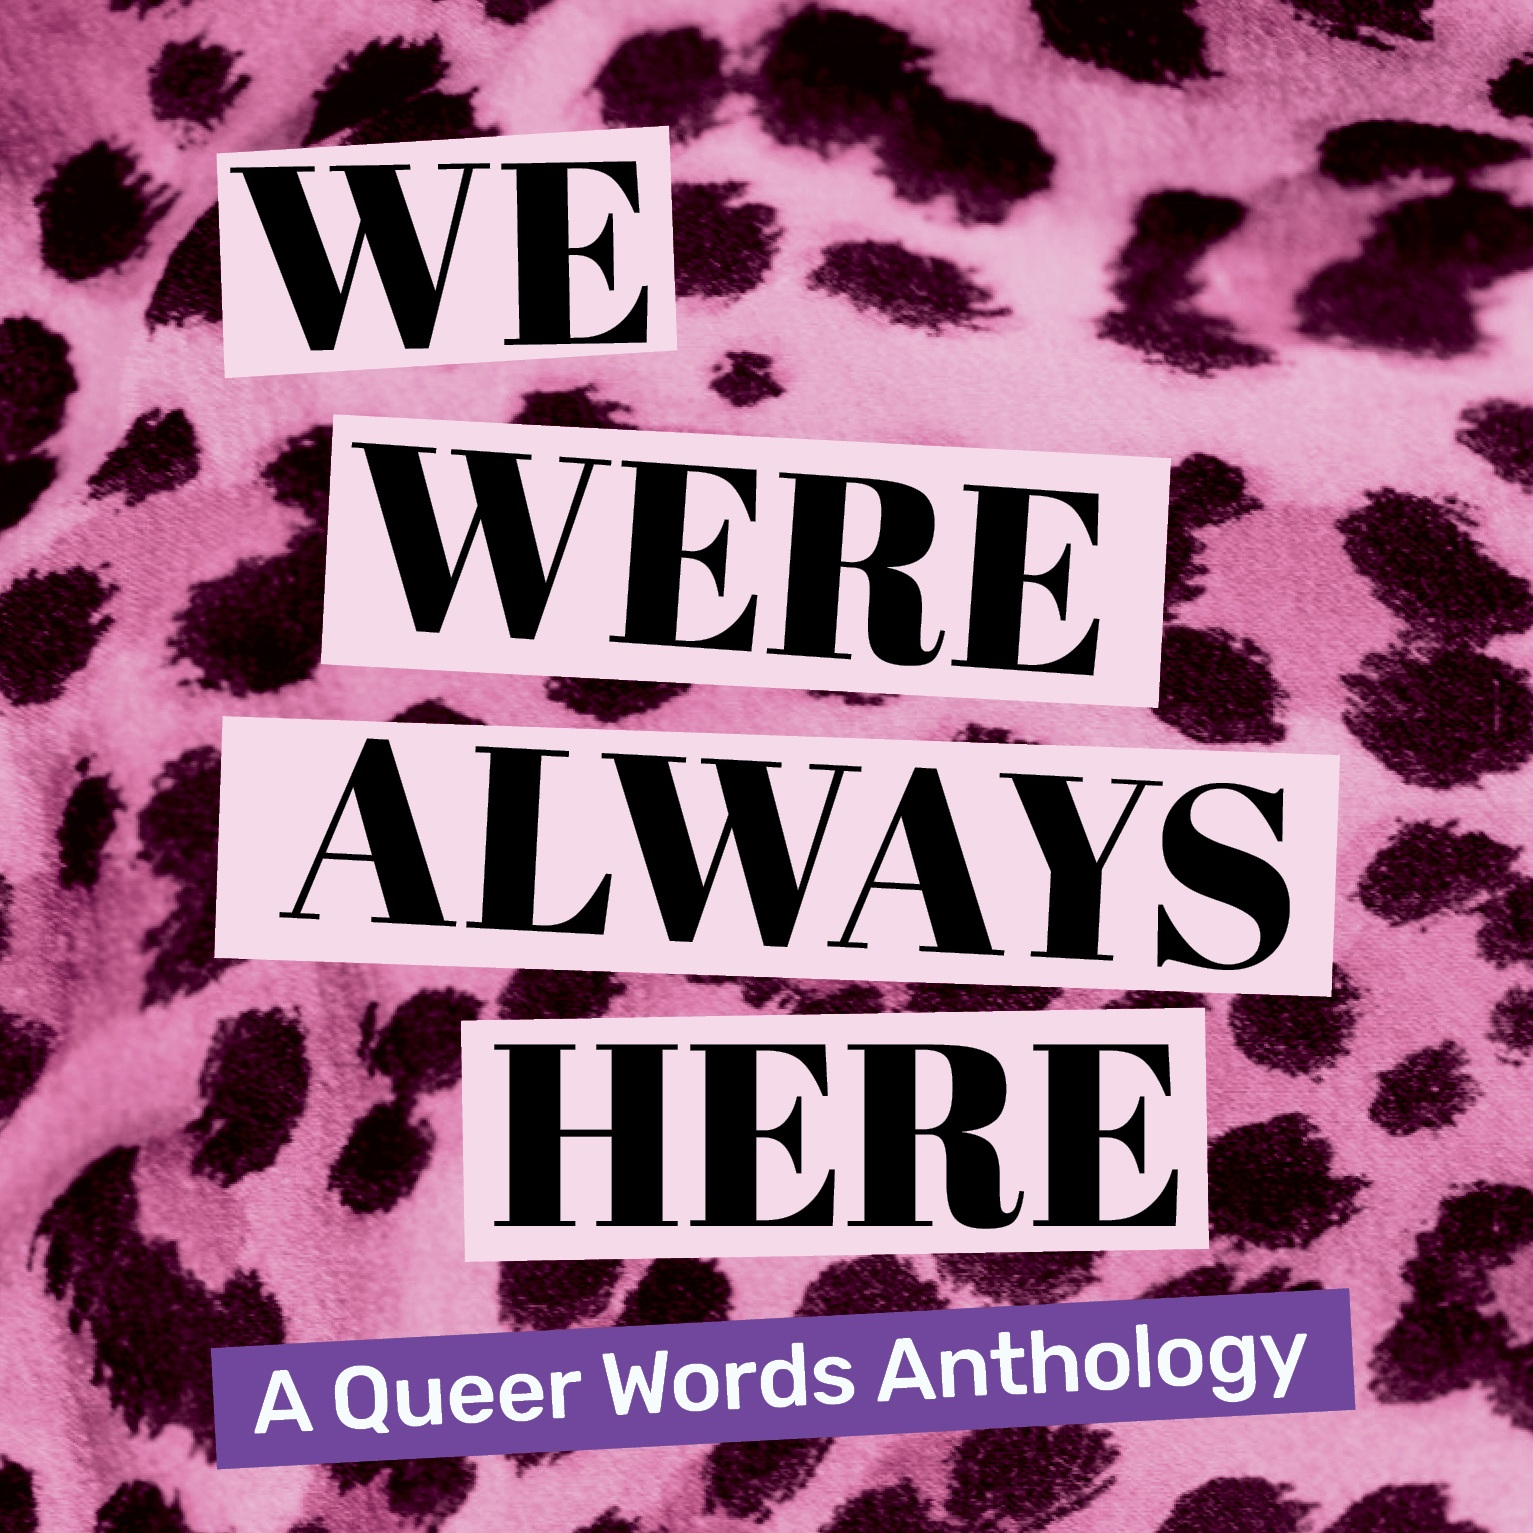 WE WERE ALWAYS HERE    We Were Always Here  is a snapshot of current Scottish LGBTI+ writing and a showcase of queer talent. From drag queens and discos, to black holes and monsters, these stories and poems wrestle with love and loneliness and the fight to be seen. Part of the Queer Words Project Scotland. Get to know the contributors.